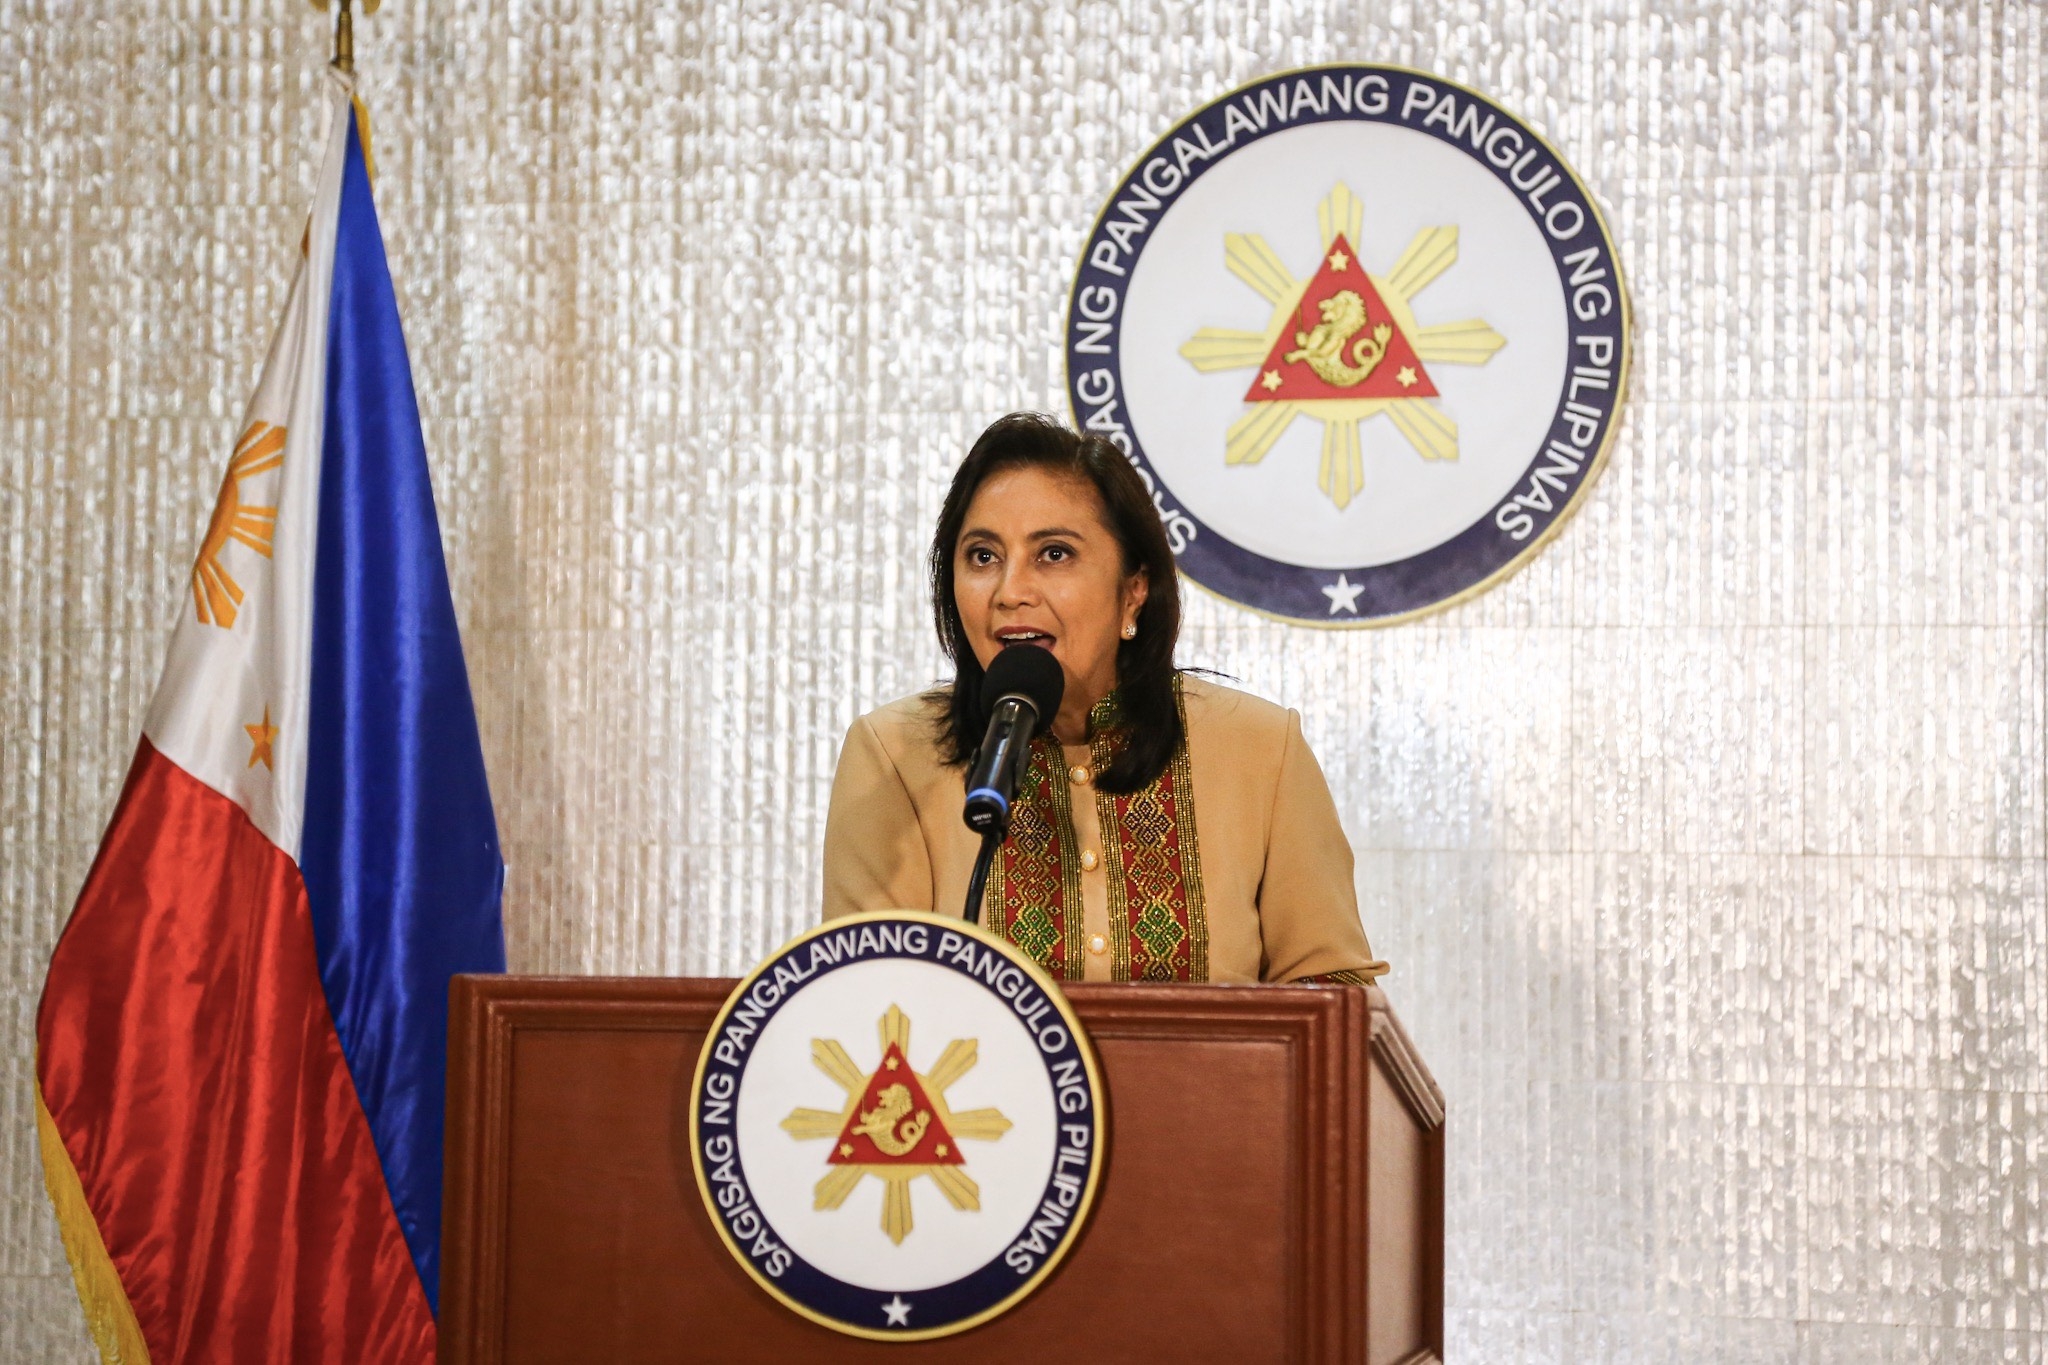 VICE PRESIDENT President Leni Robredo announces in a press conference on November 6, 2019, that she is accepting the anti-drug post offered by President Rodrigo Duterte. Photo by Jire Carreon/Rappler